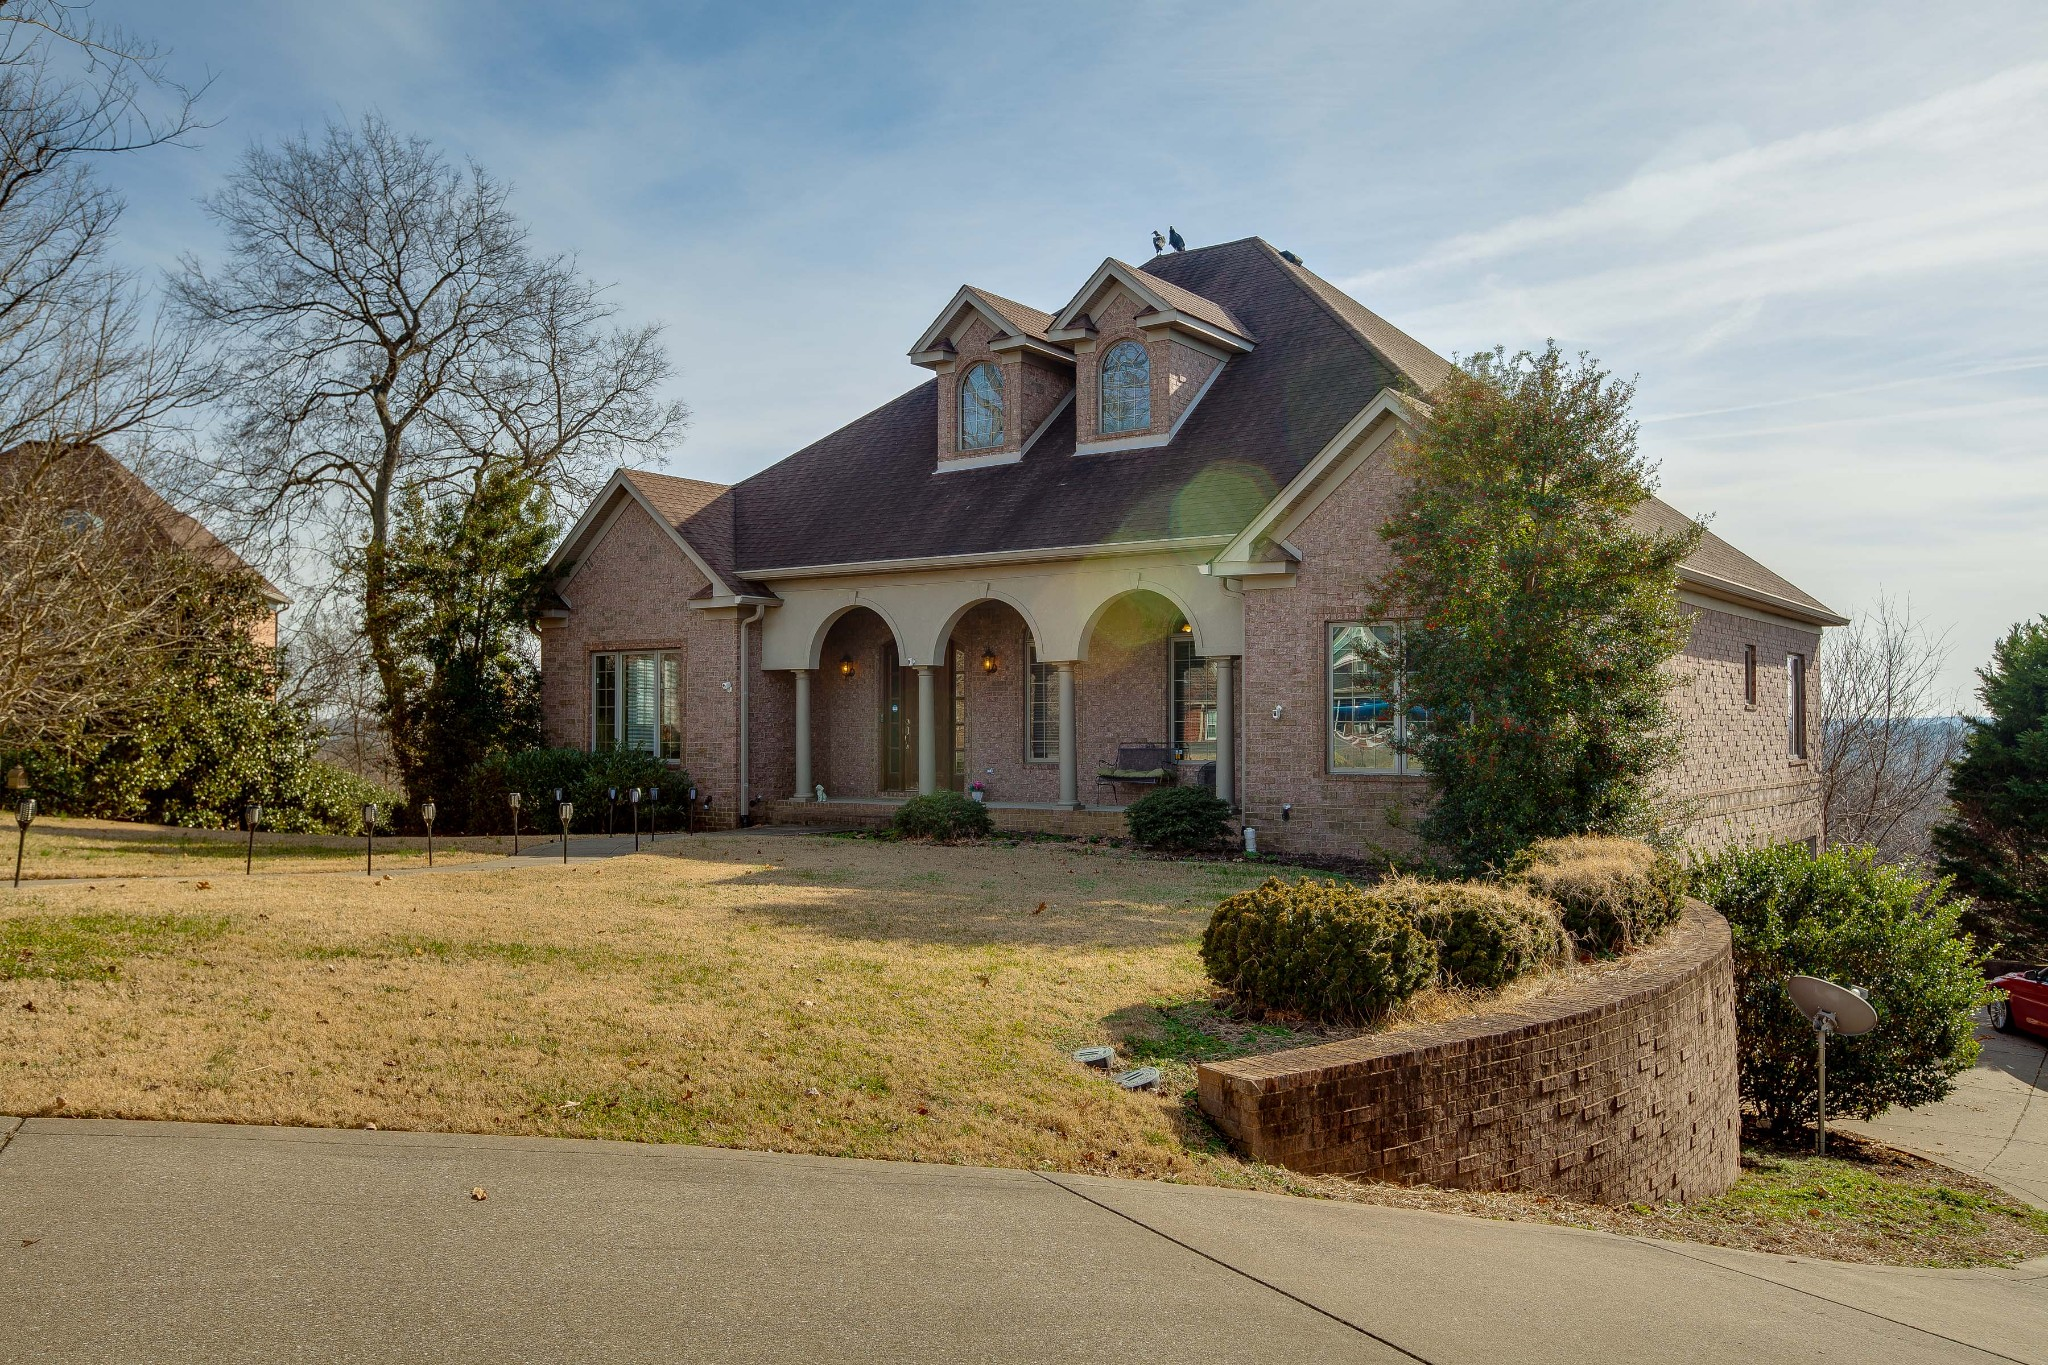 Estate like home located on a cul de sac with a beautiful 50 mile view. Large foyer with natural lig